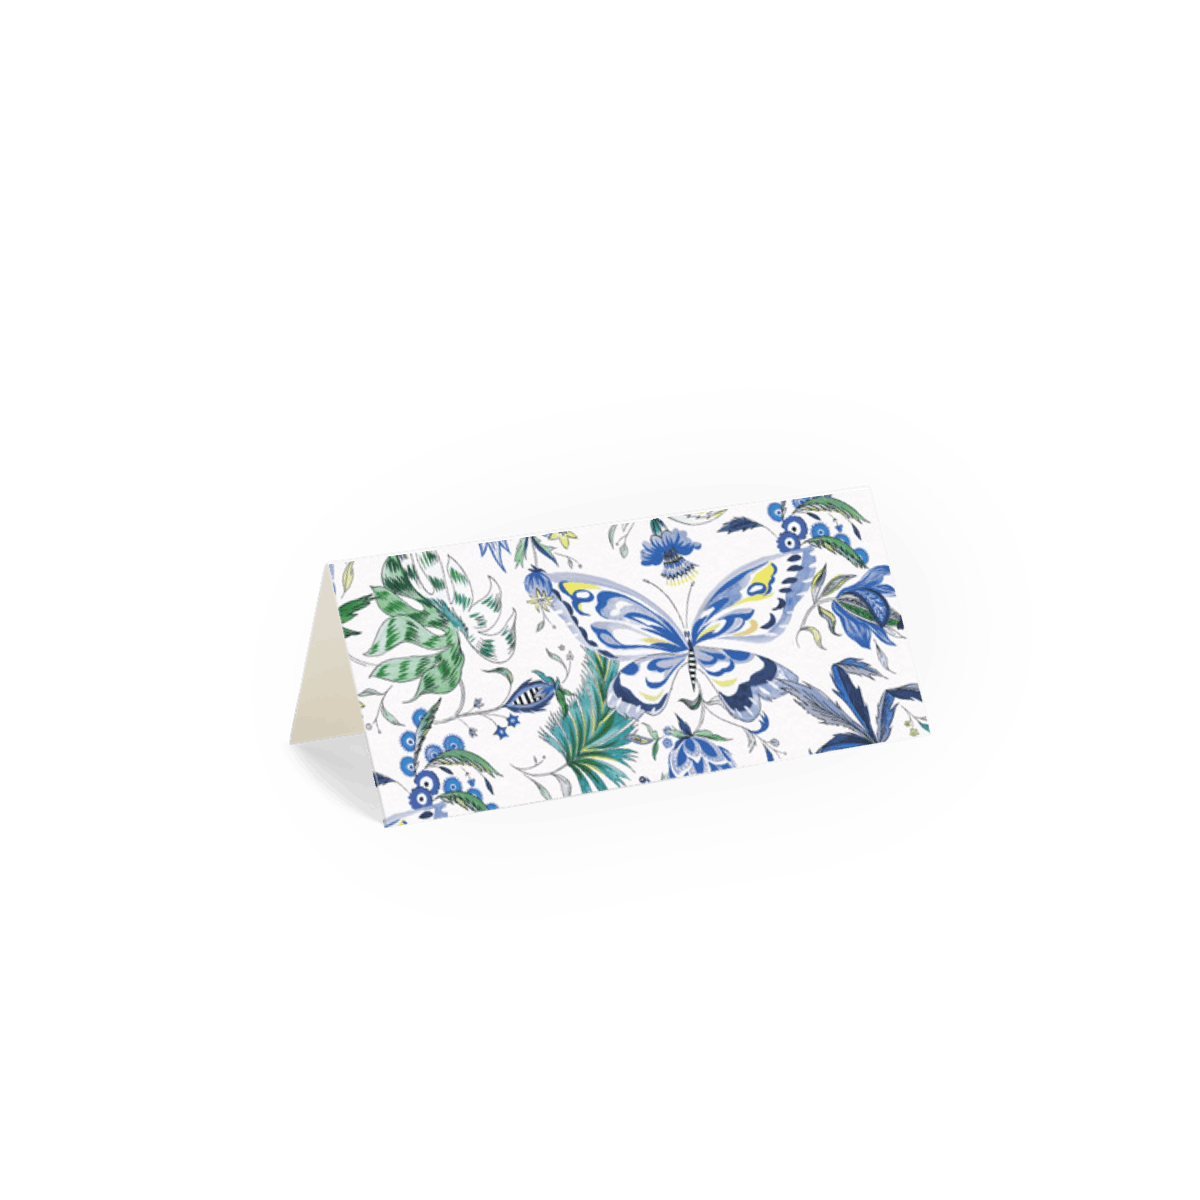 Https%3a%2f%2fwww.papier.com%2fproduct image%2f81840%2f15%2fpineapple paisley 19717 back 1561996121.png?ixlib=rb 1.1